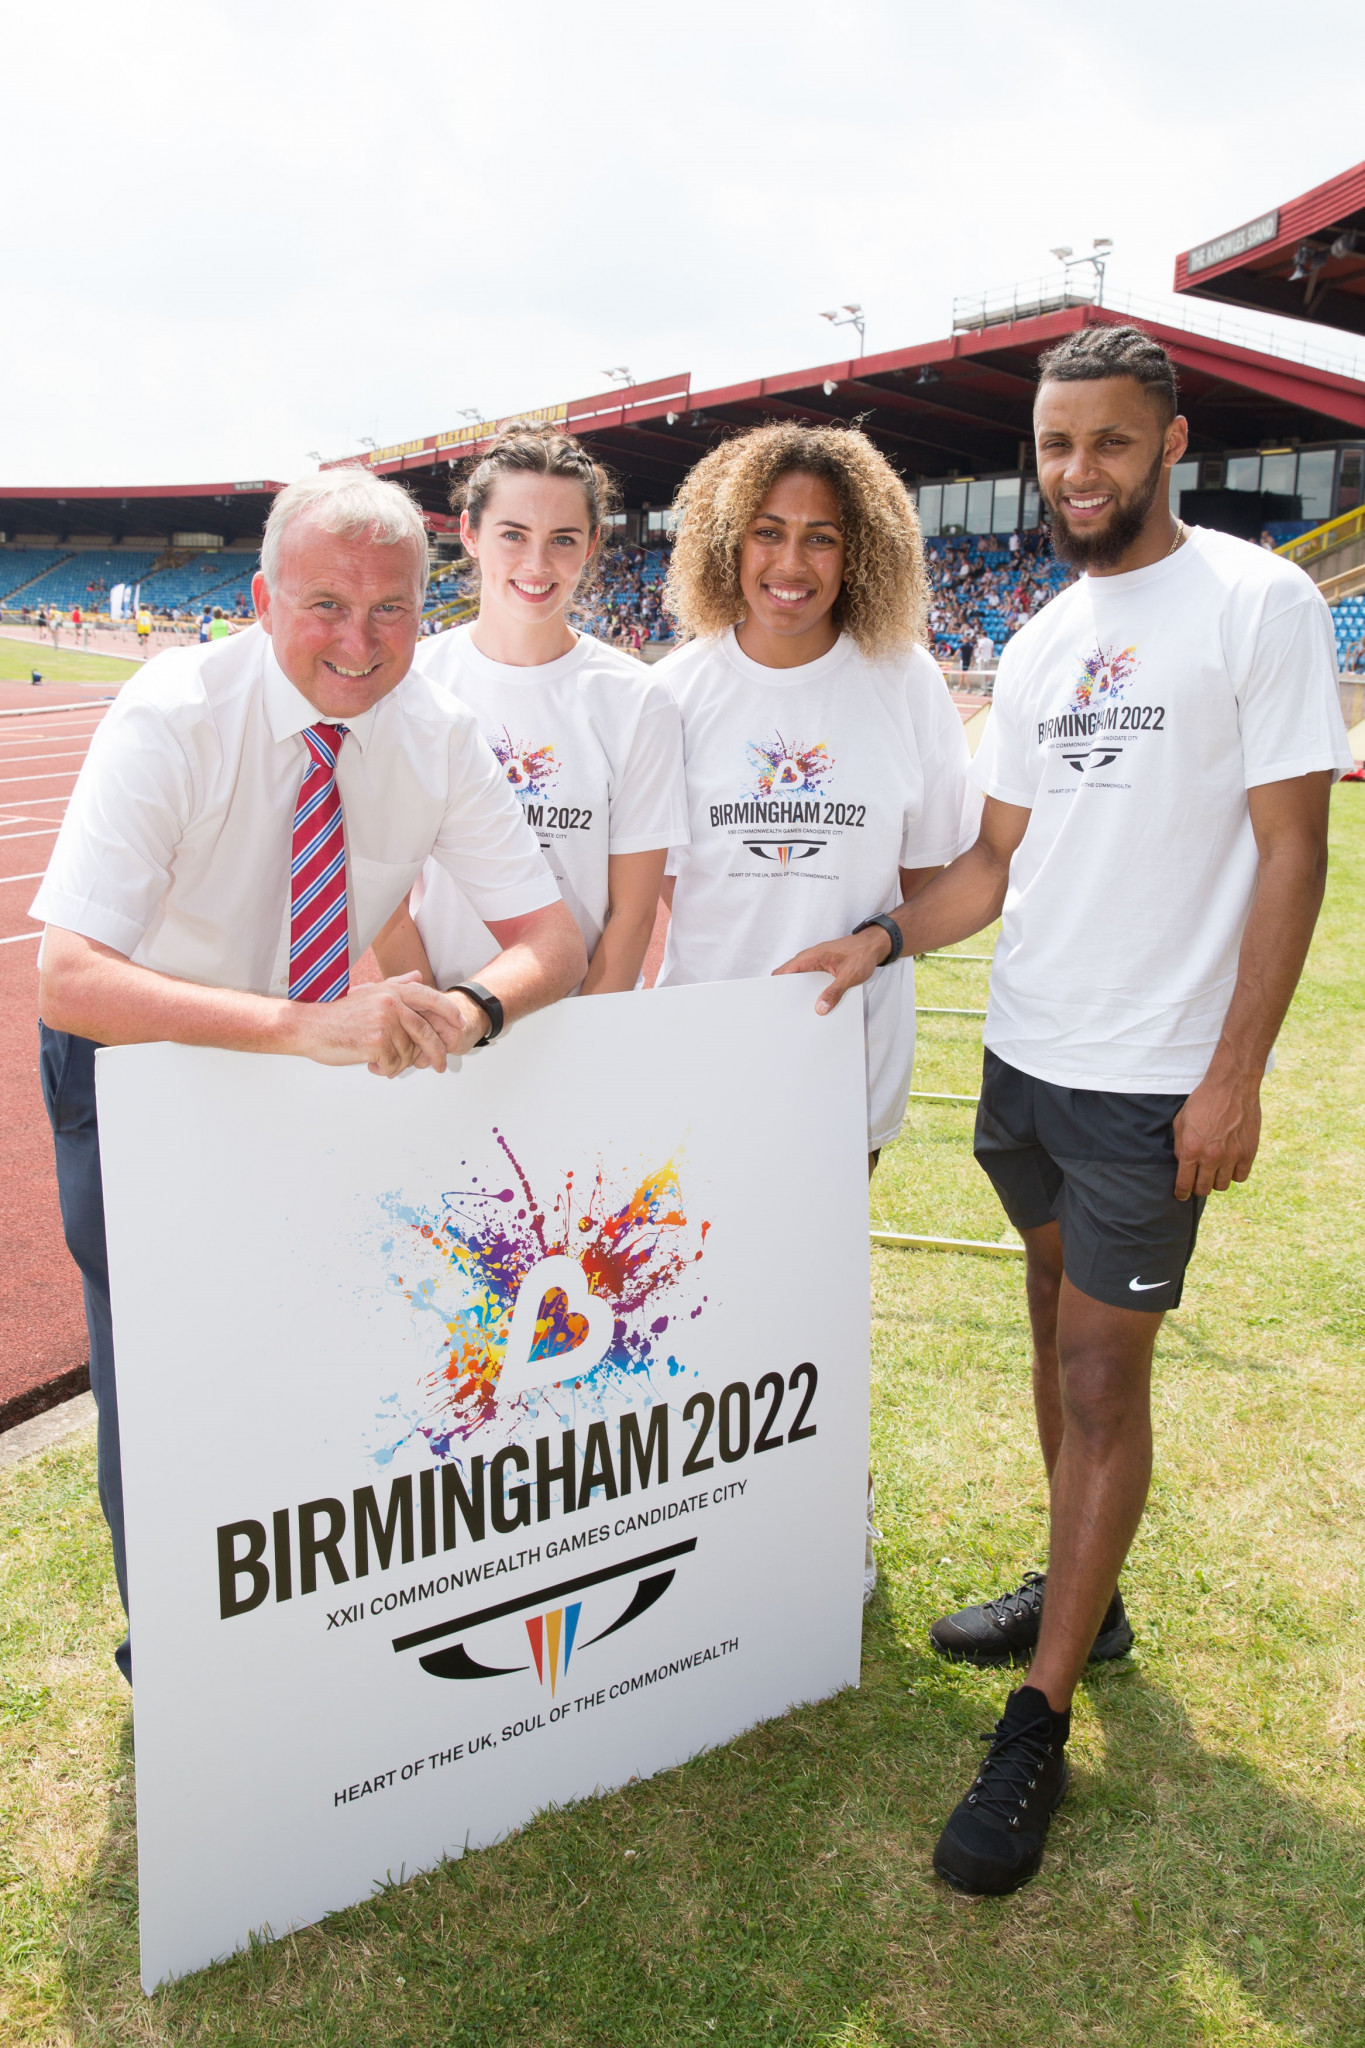 Birmingham 2022 chairman Ian Ward, left, is set to officially take over as the new leader of the City Council ©Birmingham 2022